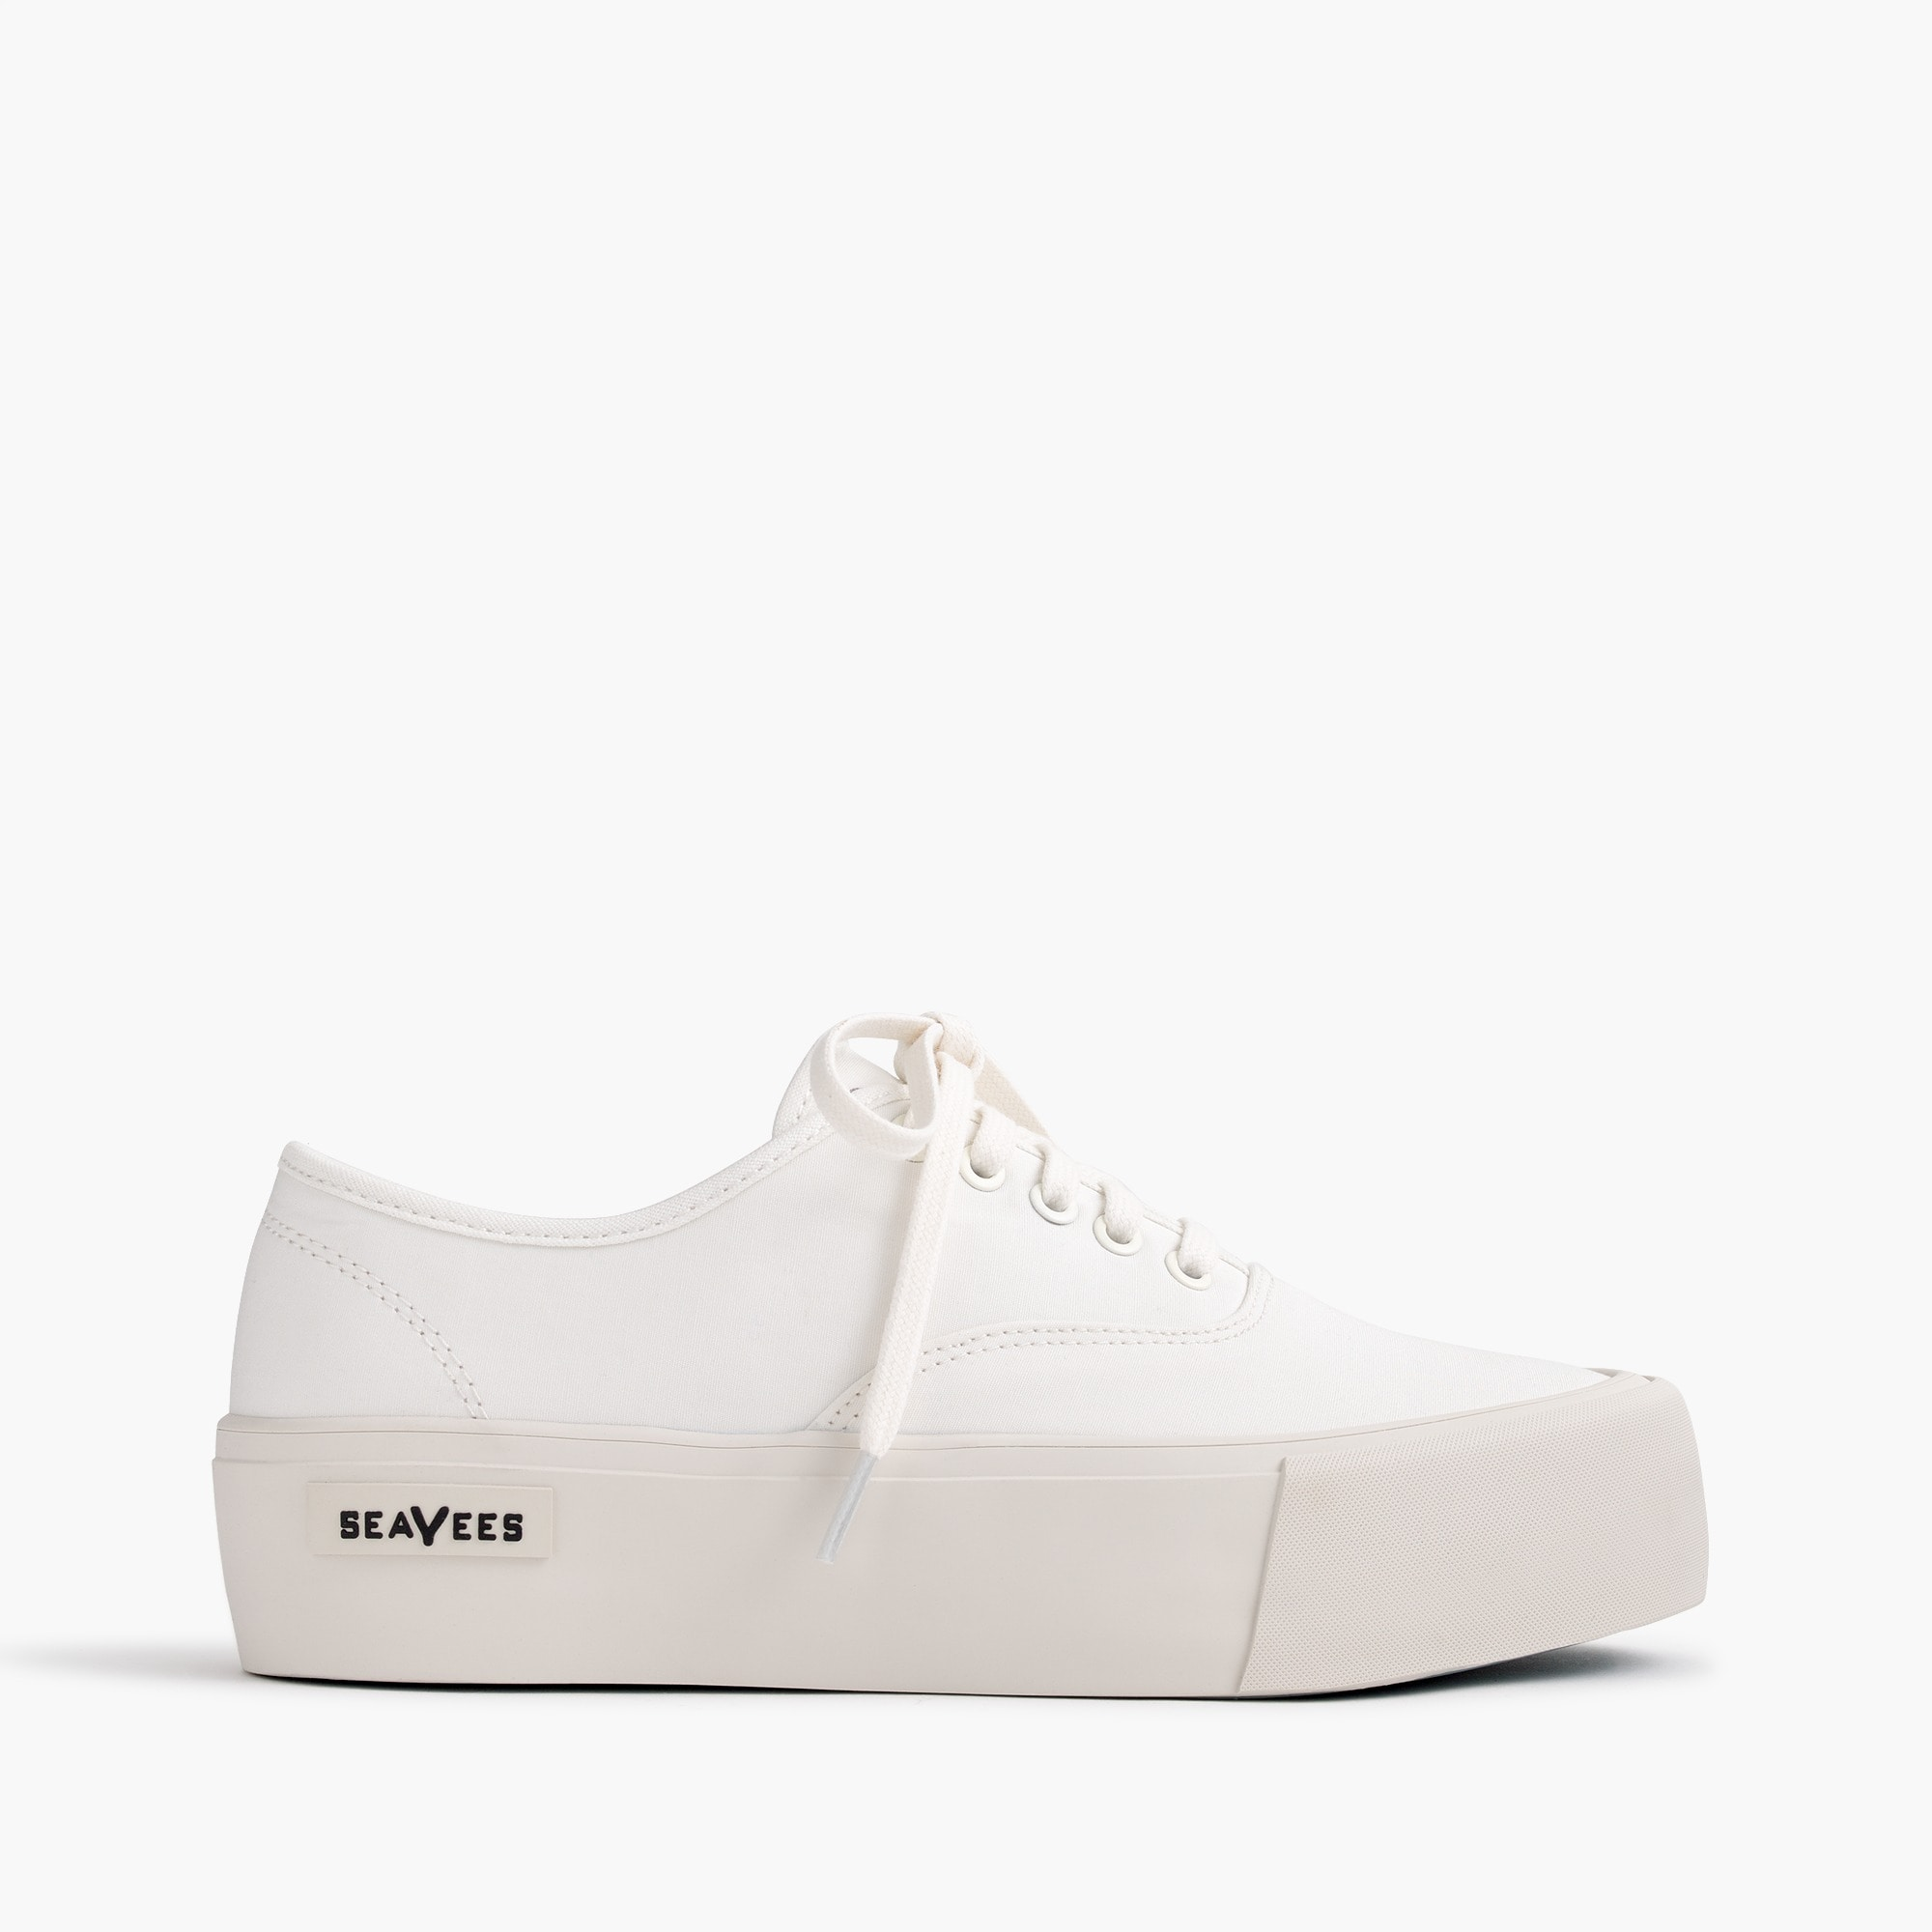 SeaVees® for J.Crew Legend platform sneakers